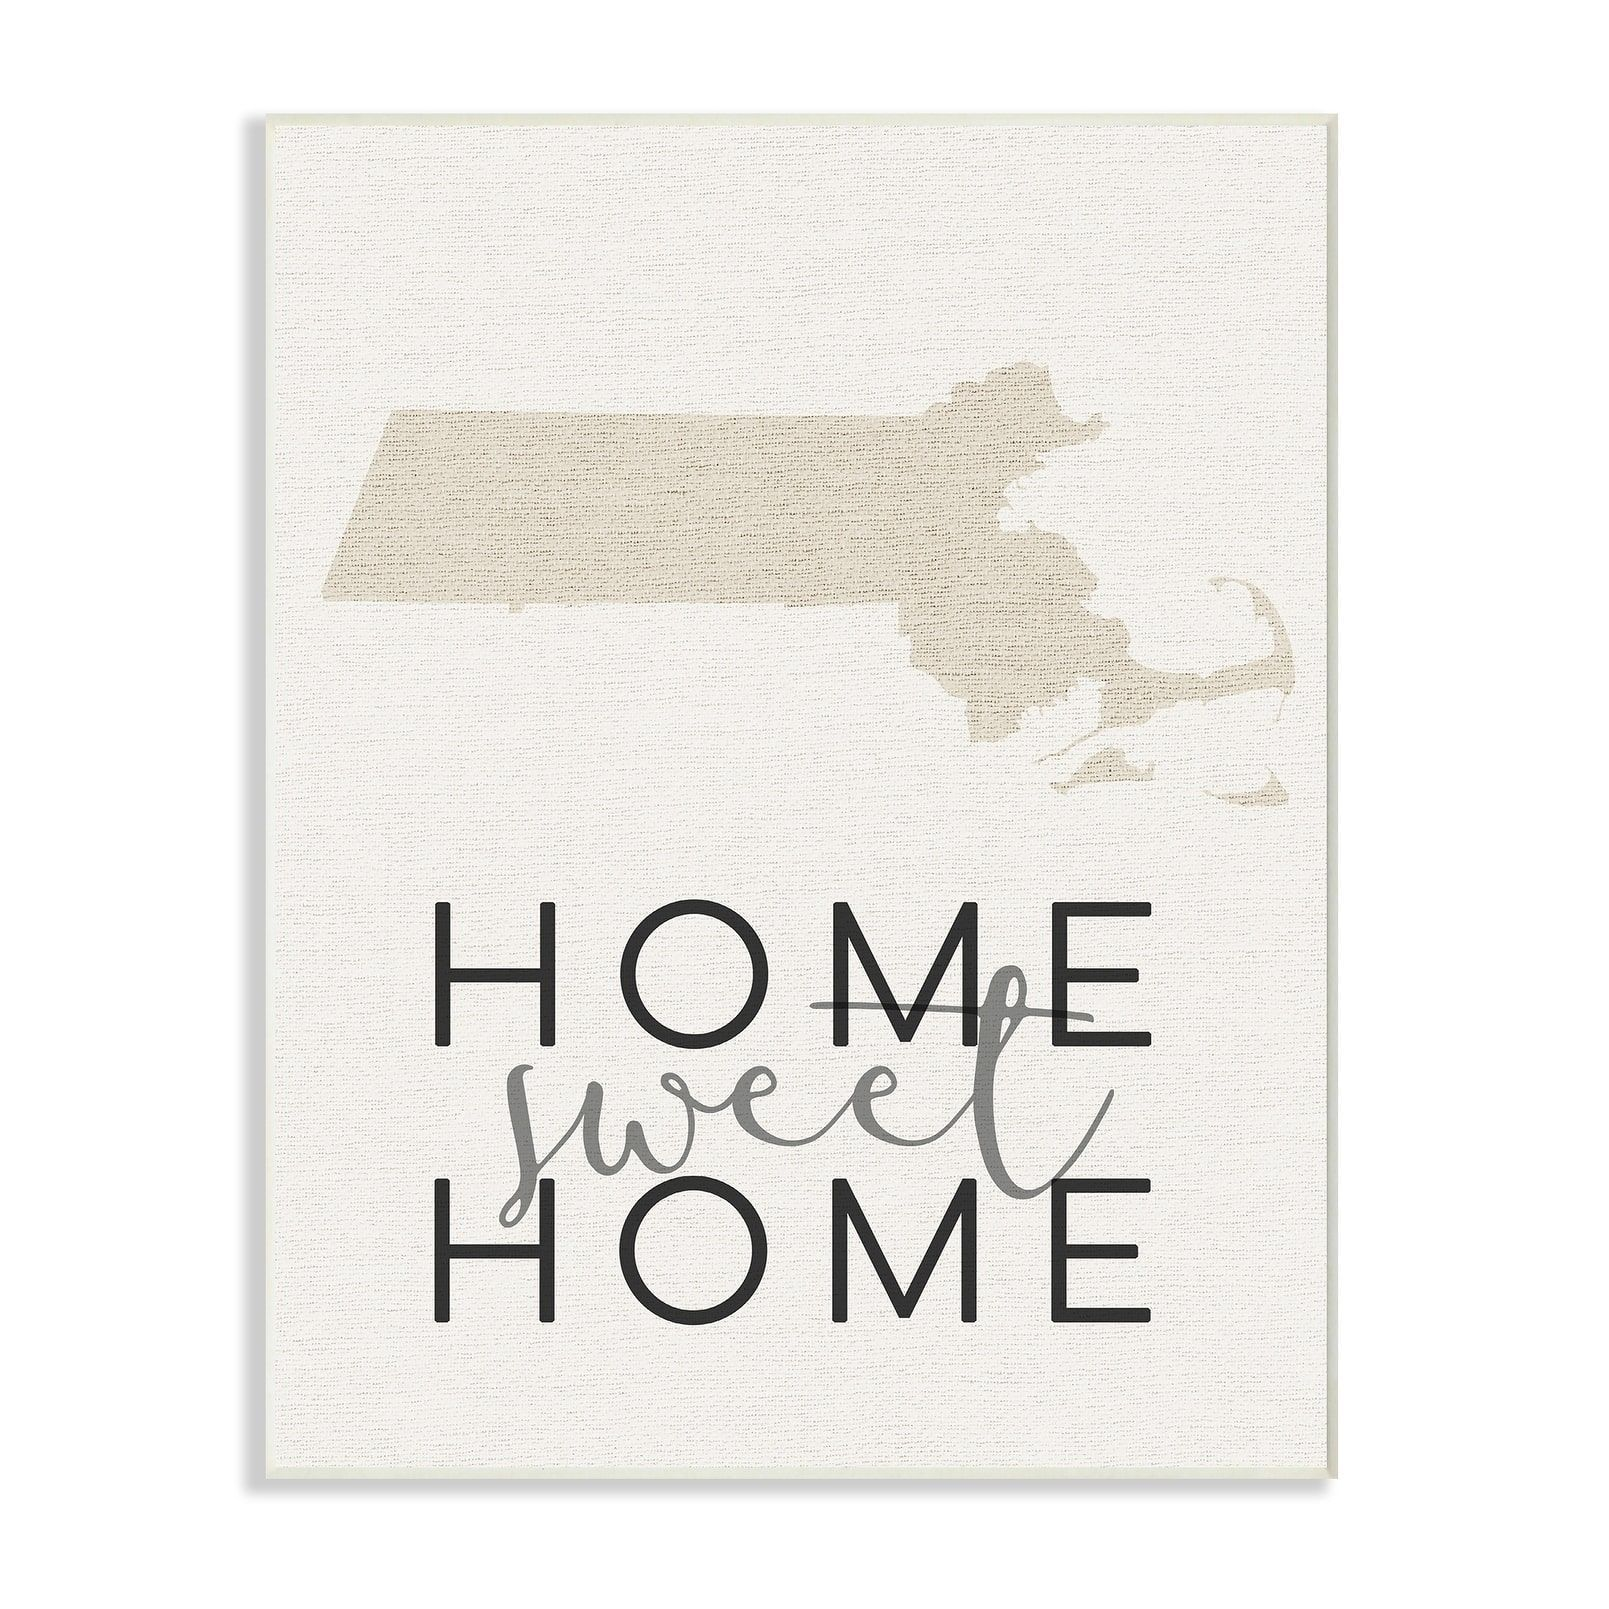 Stupell home sweet home massachusetts typography wall plaque art